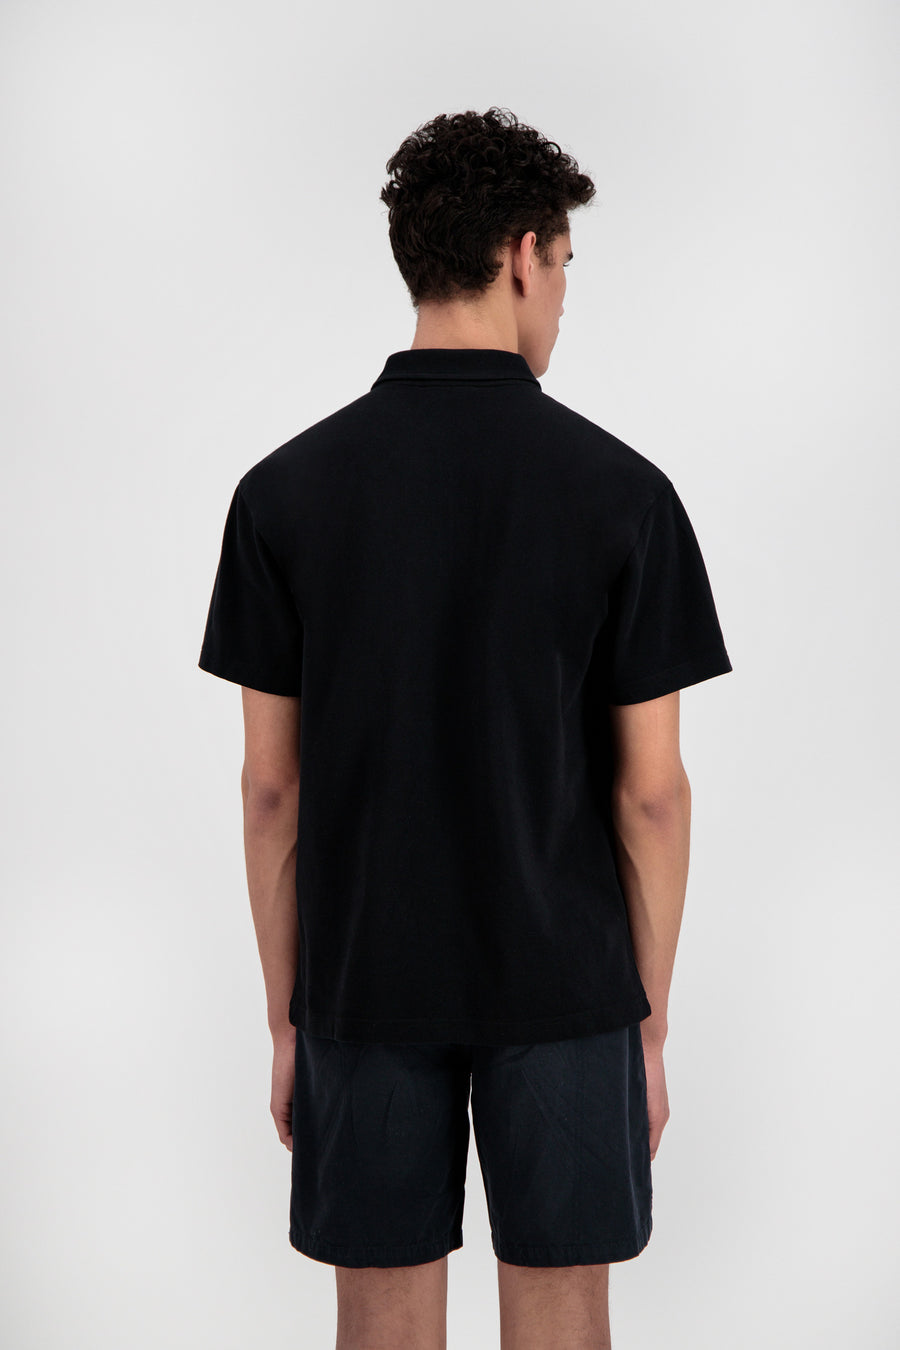 ØLÅF Zip Polo <br>Black